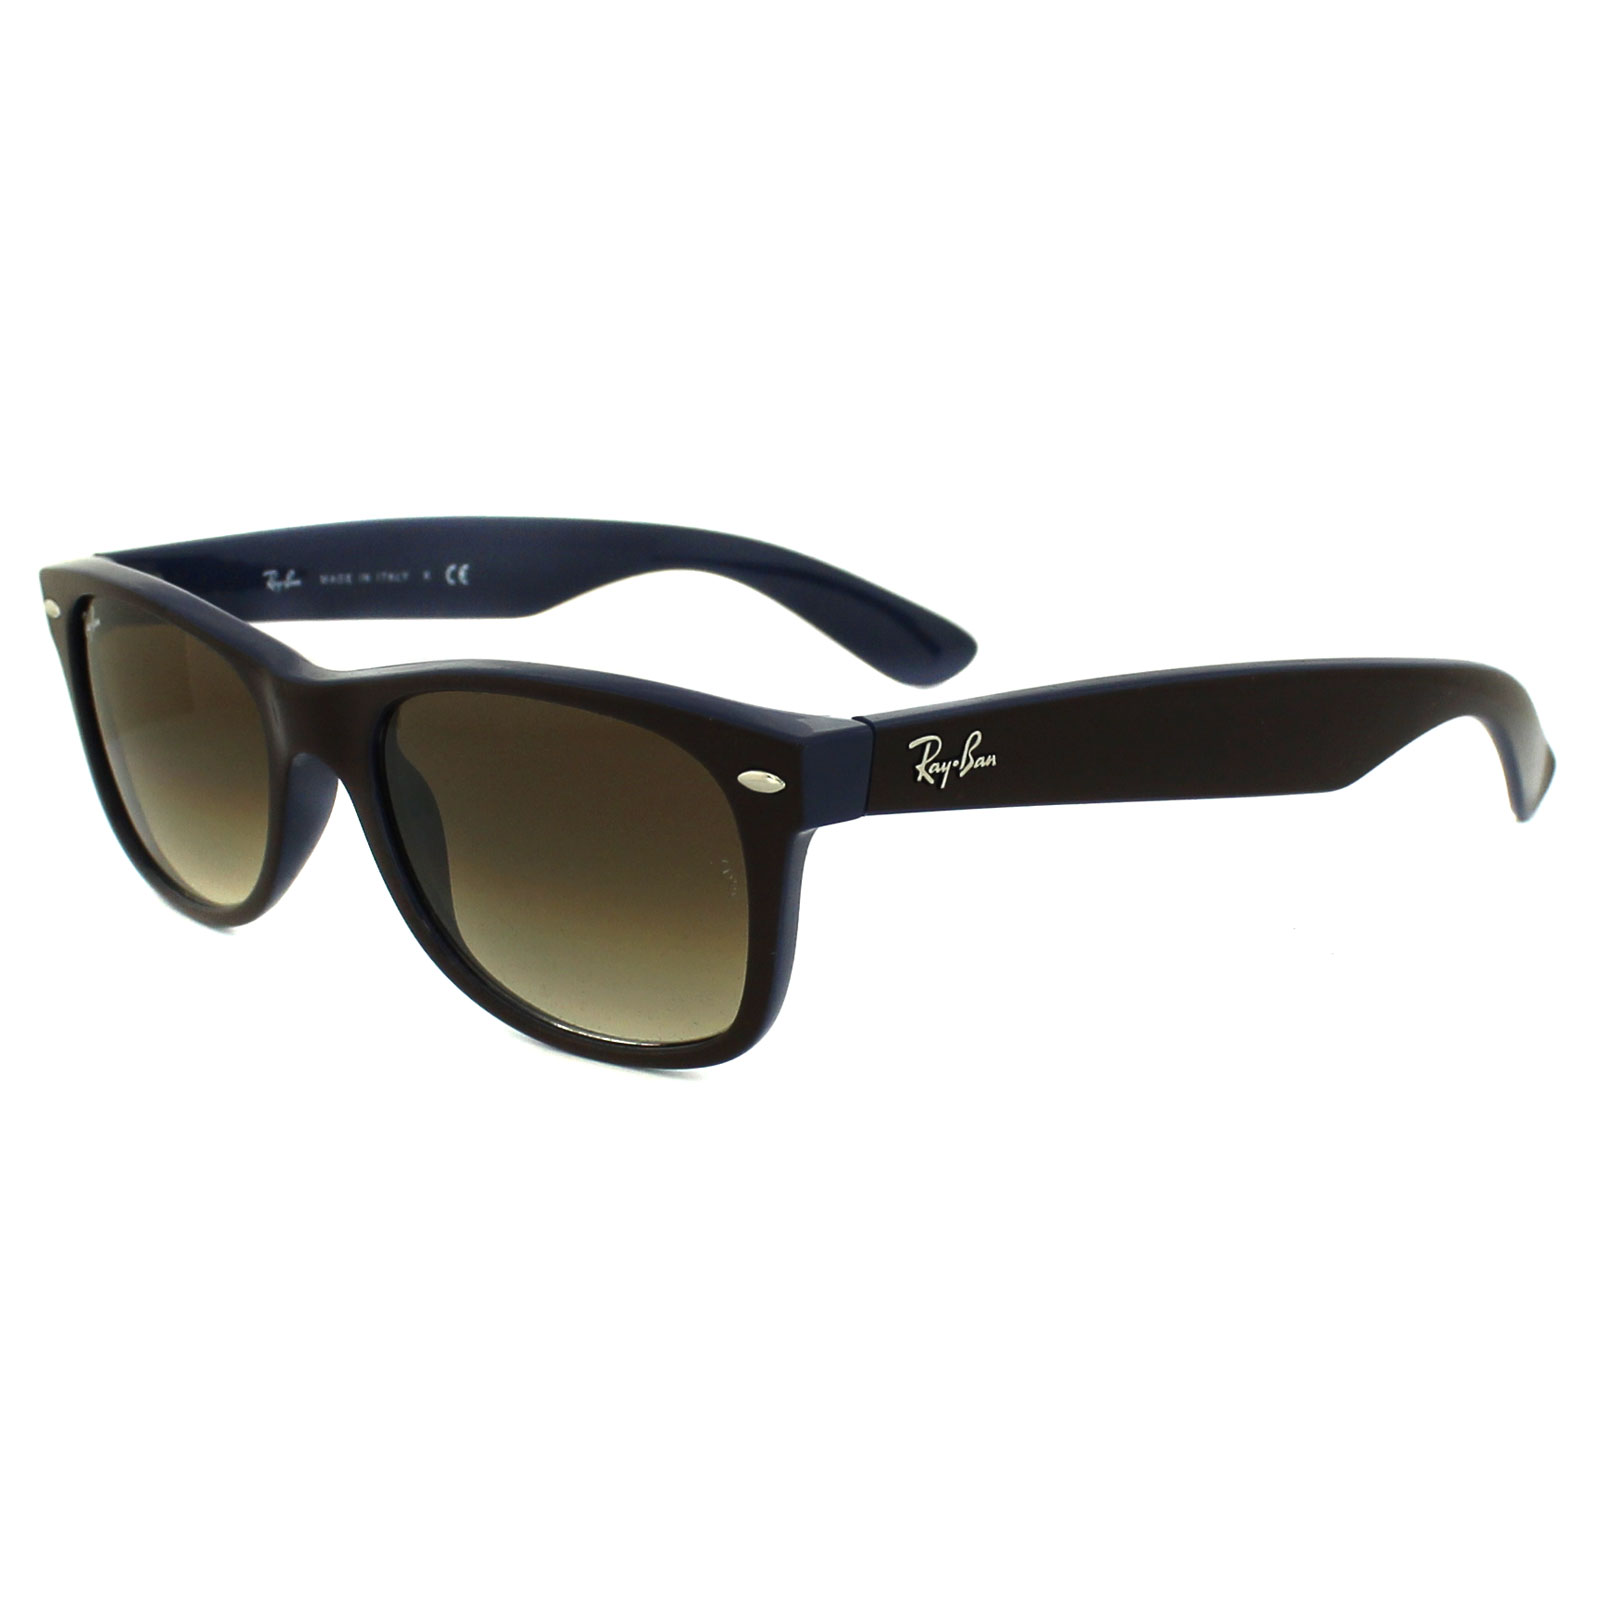 ray ban new wayfarer sunglasses top brown on blue  ray ban sunglasses new wayfarer 2132 874/51 top brown blue light brown gradient